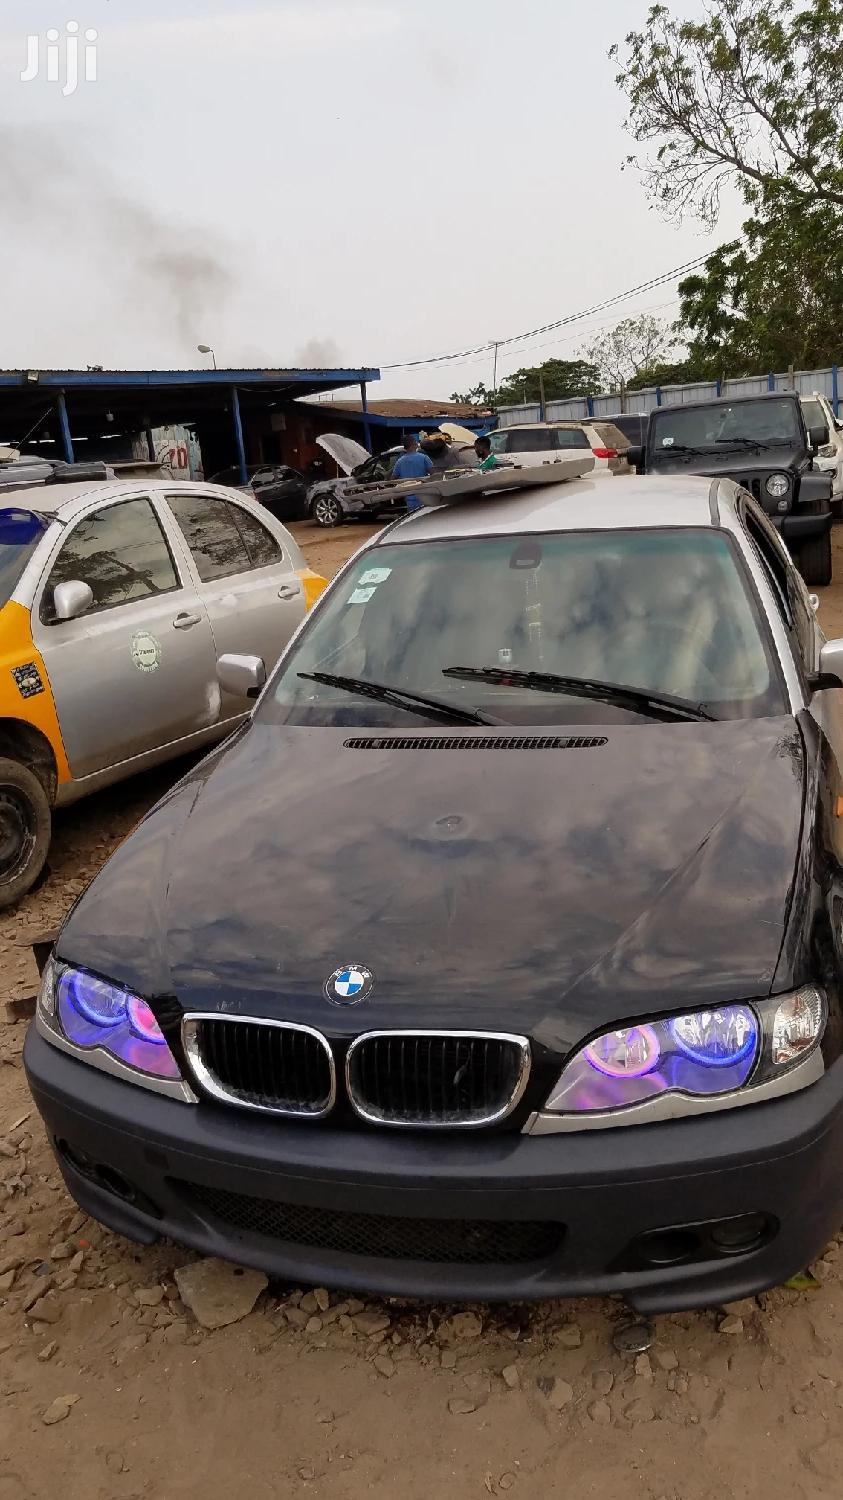 Bring Your Old Bmw Headlamps for More Specs